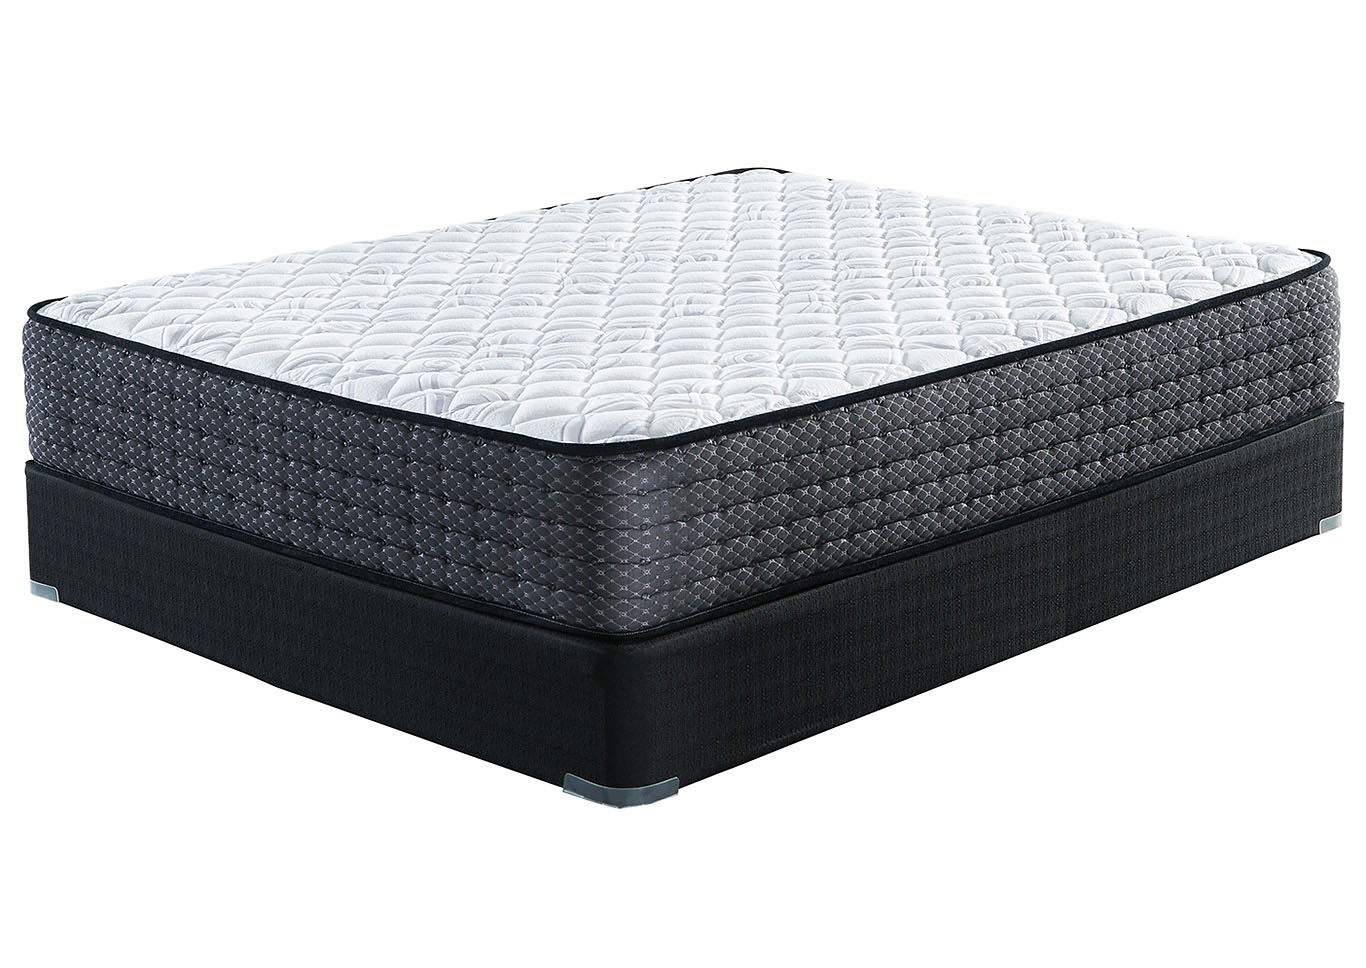 Limited Edition White Firm Queen Mattress w/Foundation,Sierra Sleep by Ashley